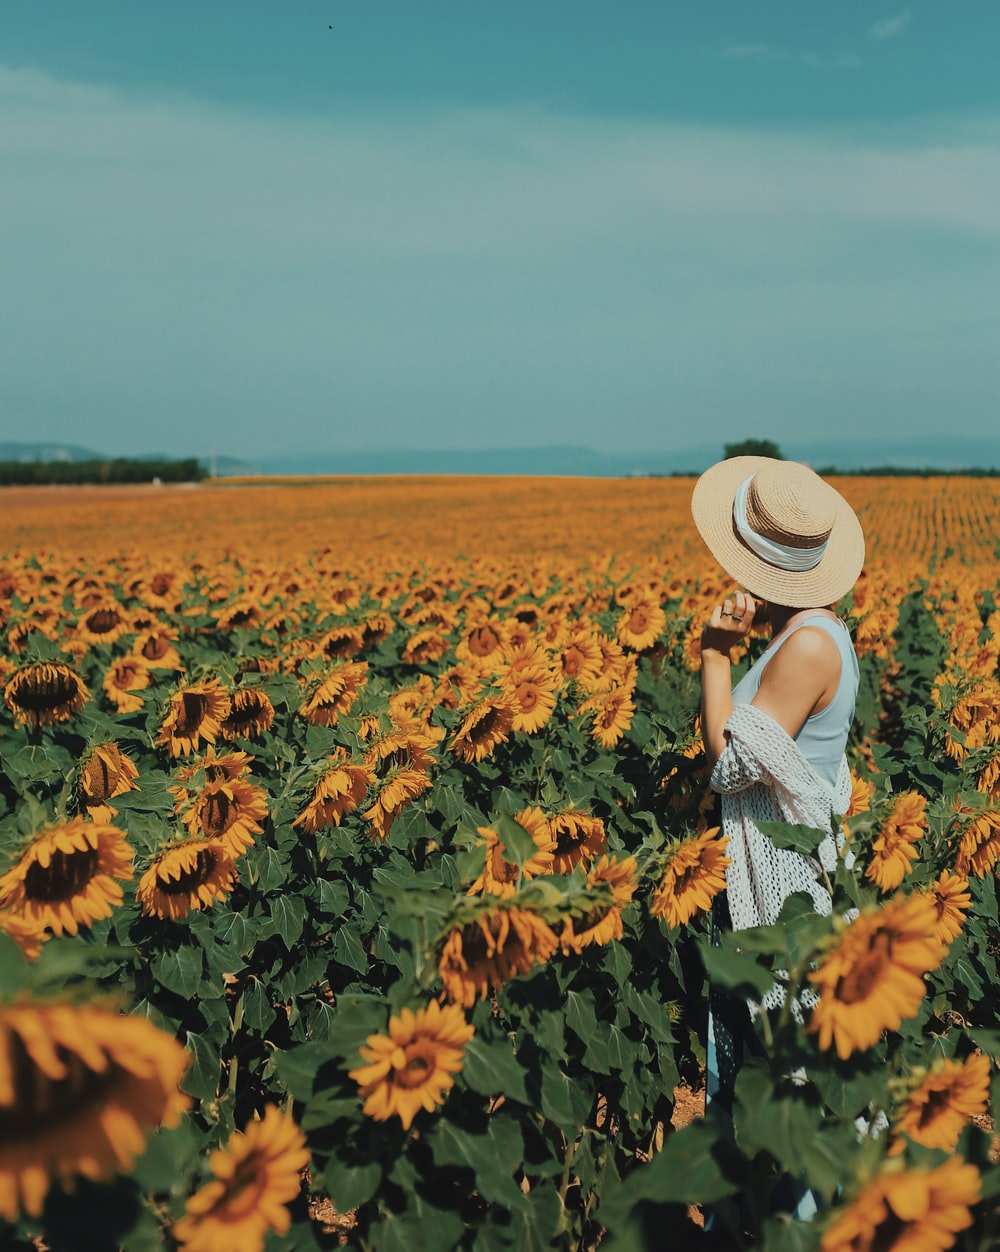 photography of woman standing near sunflower field during daytime